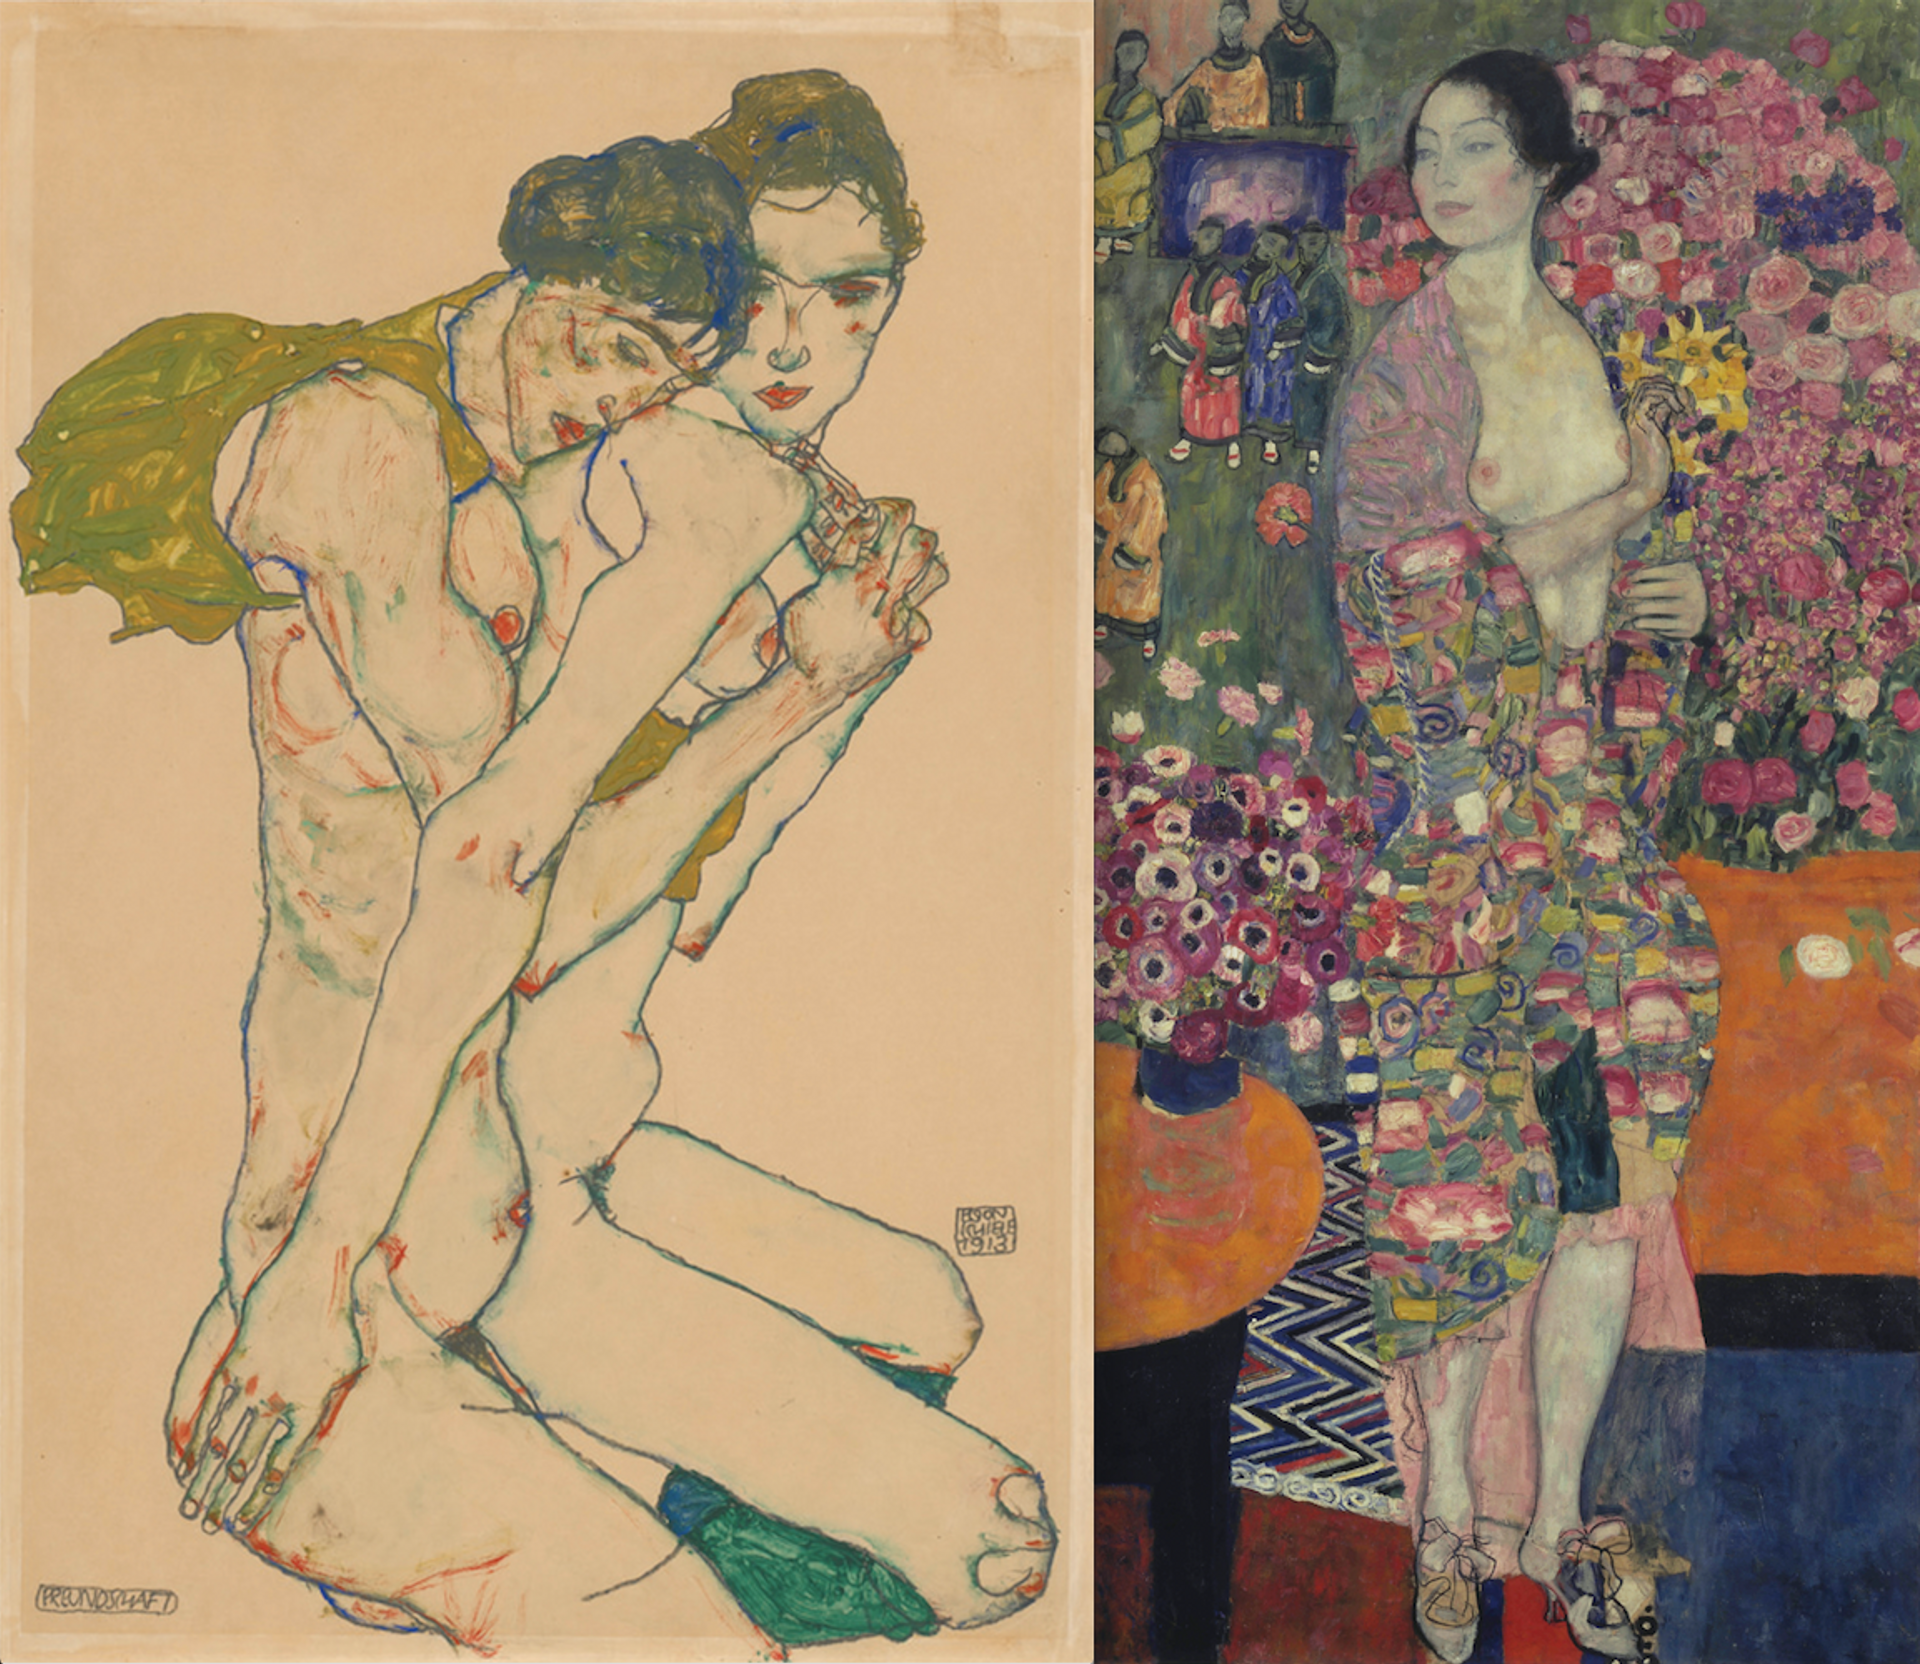 The Neue Galerie's show—which includes Egon Schiele's Friendship (1913) and Gustav Klimt's The Dancer (1916-17)—also features a number of more explicit works Courtesy of Neue Galerie New York